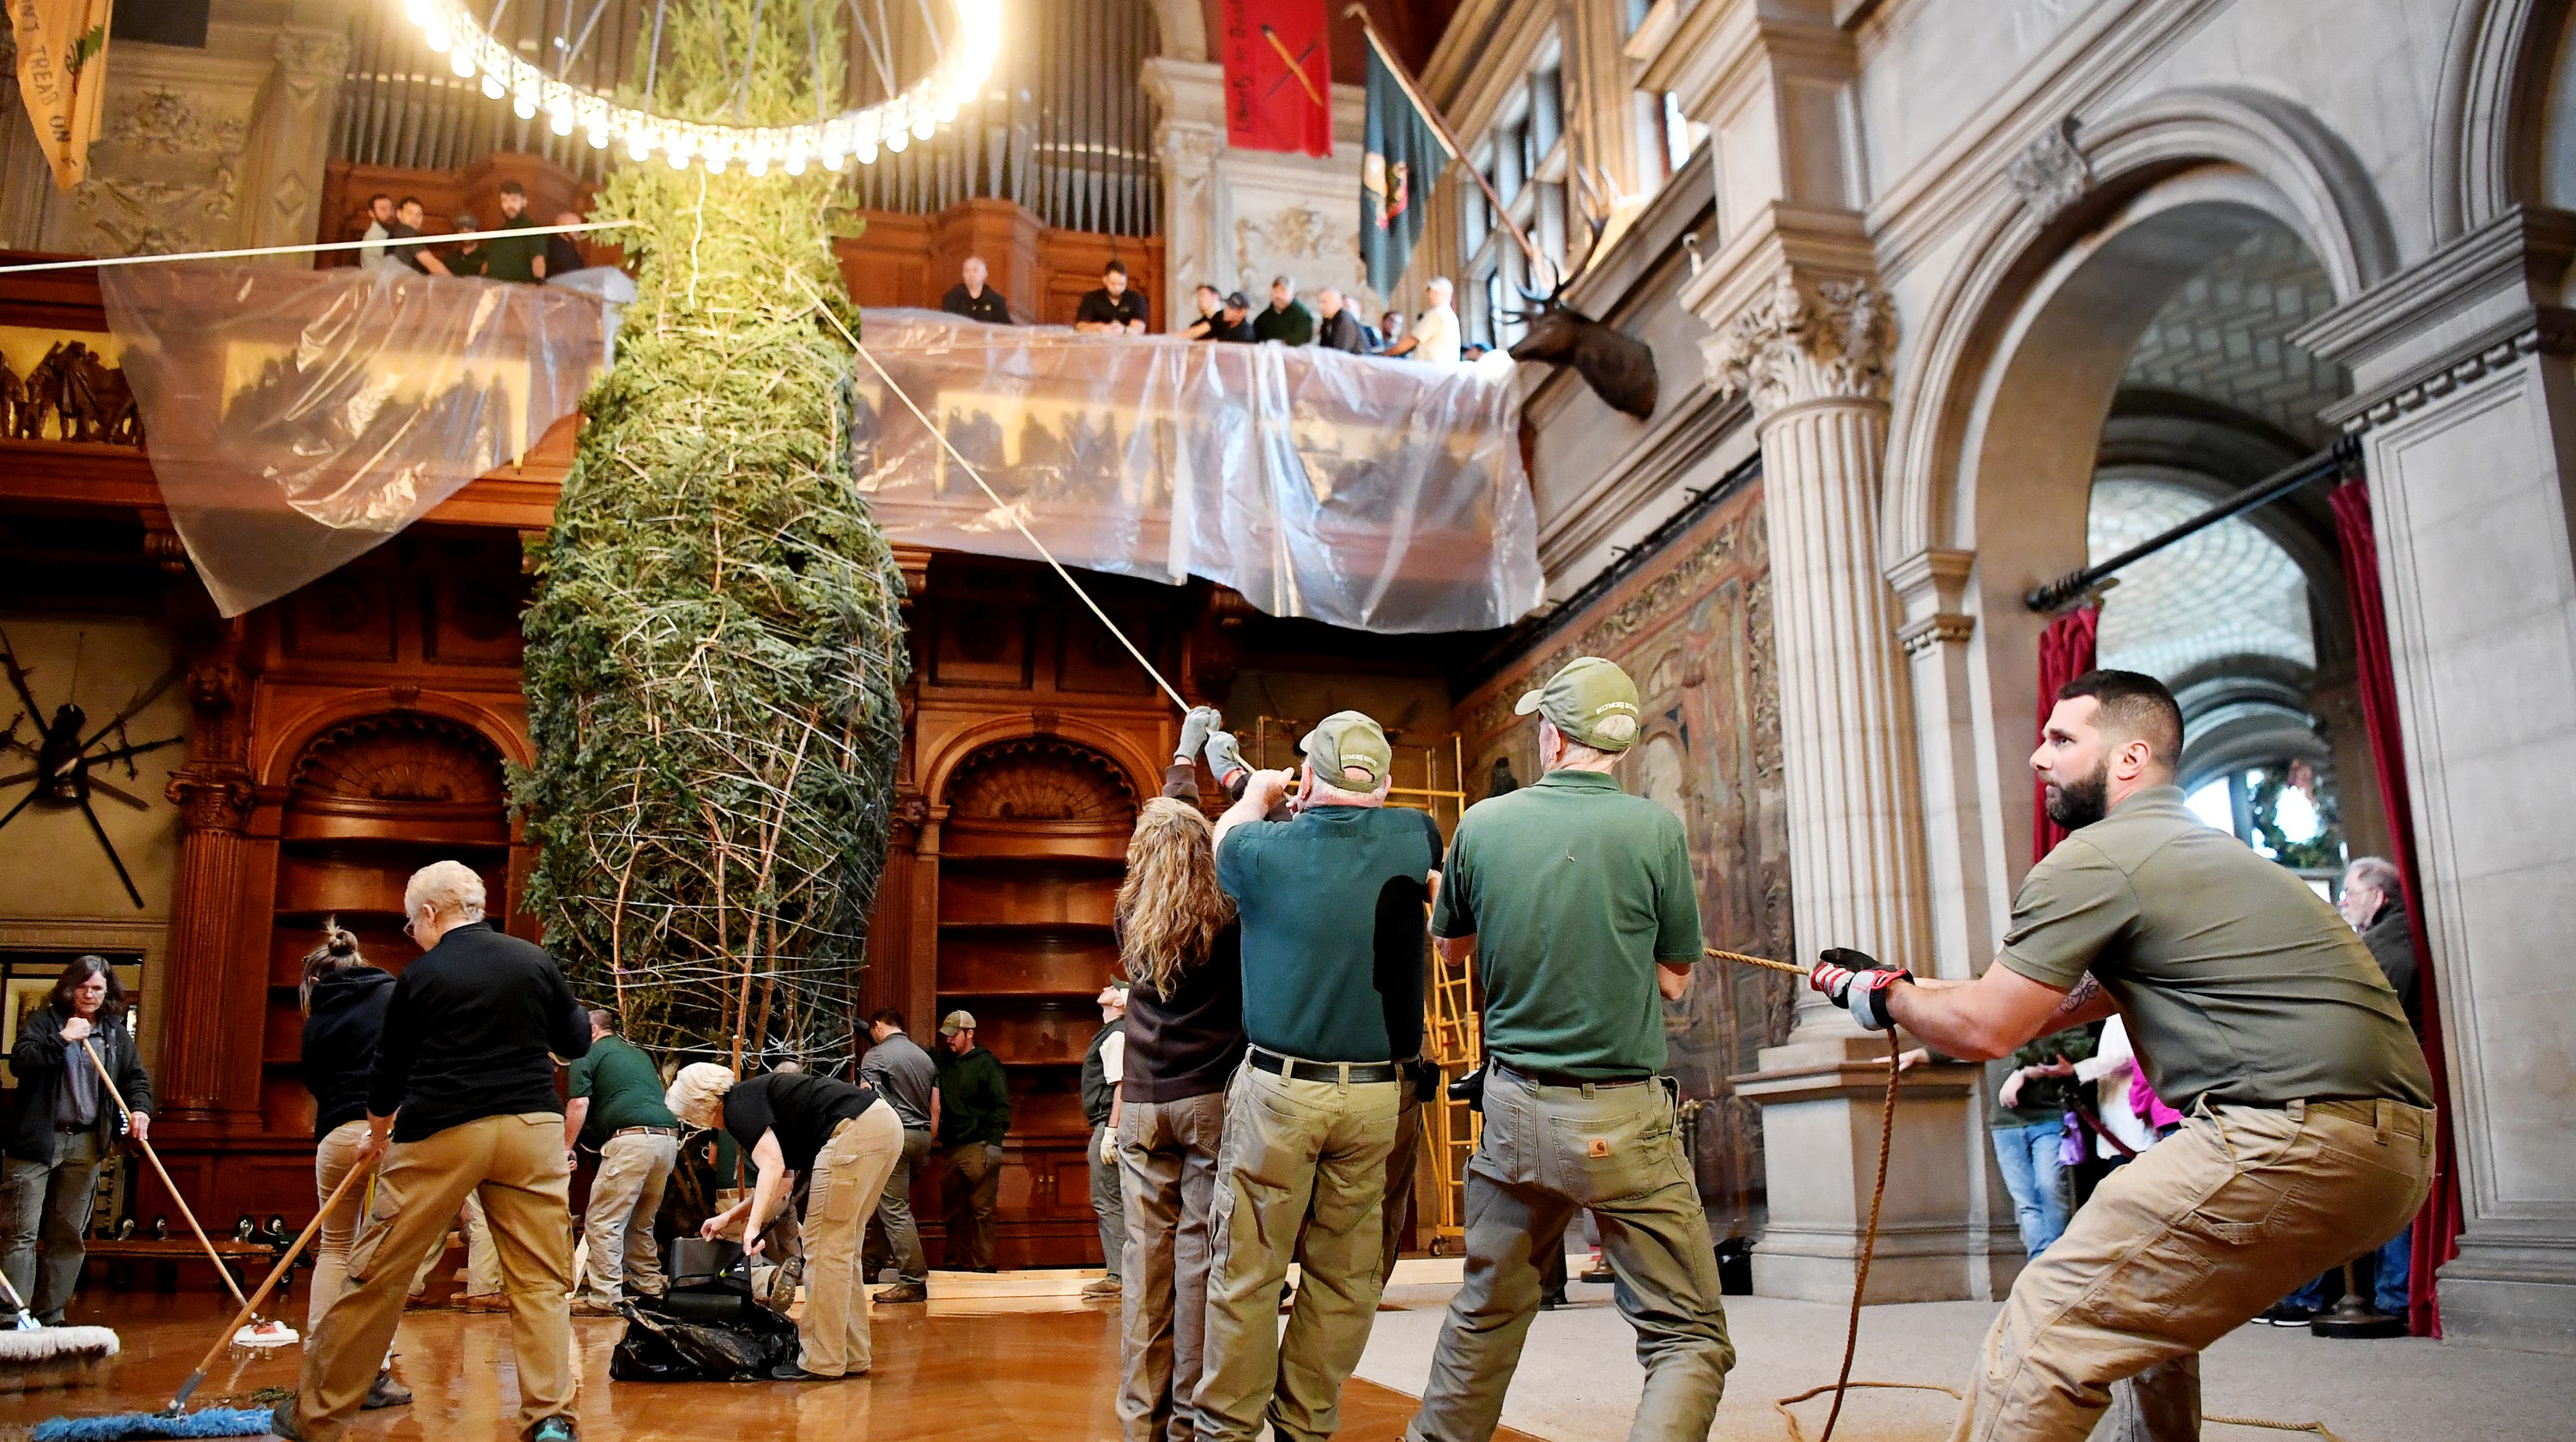 A tree grows in Biltmore: Christmas magic infuses a 35-foot Fraser fir